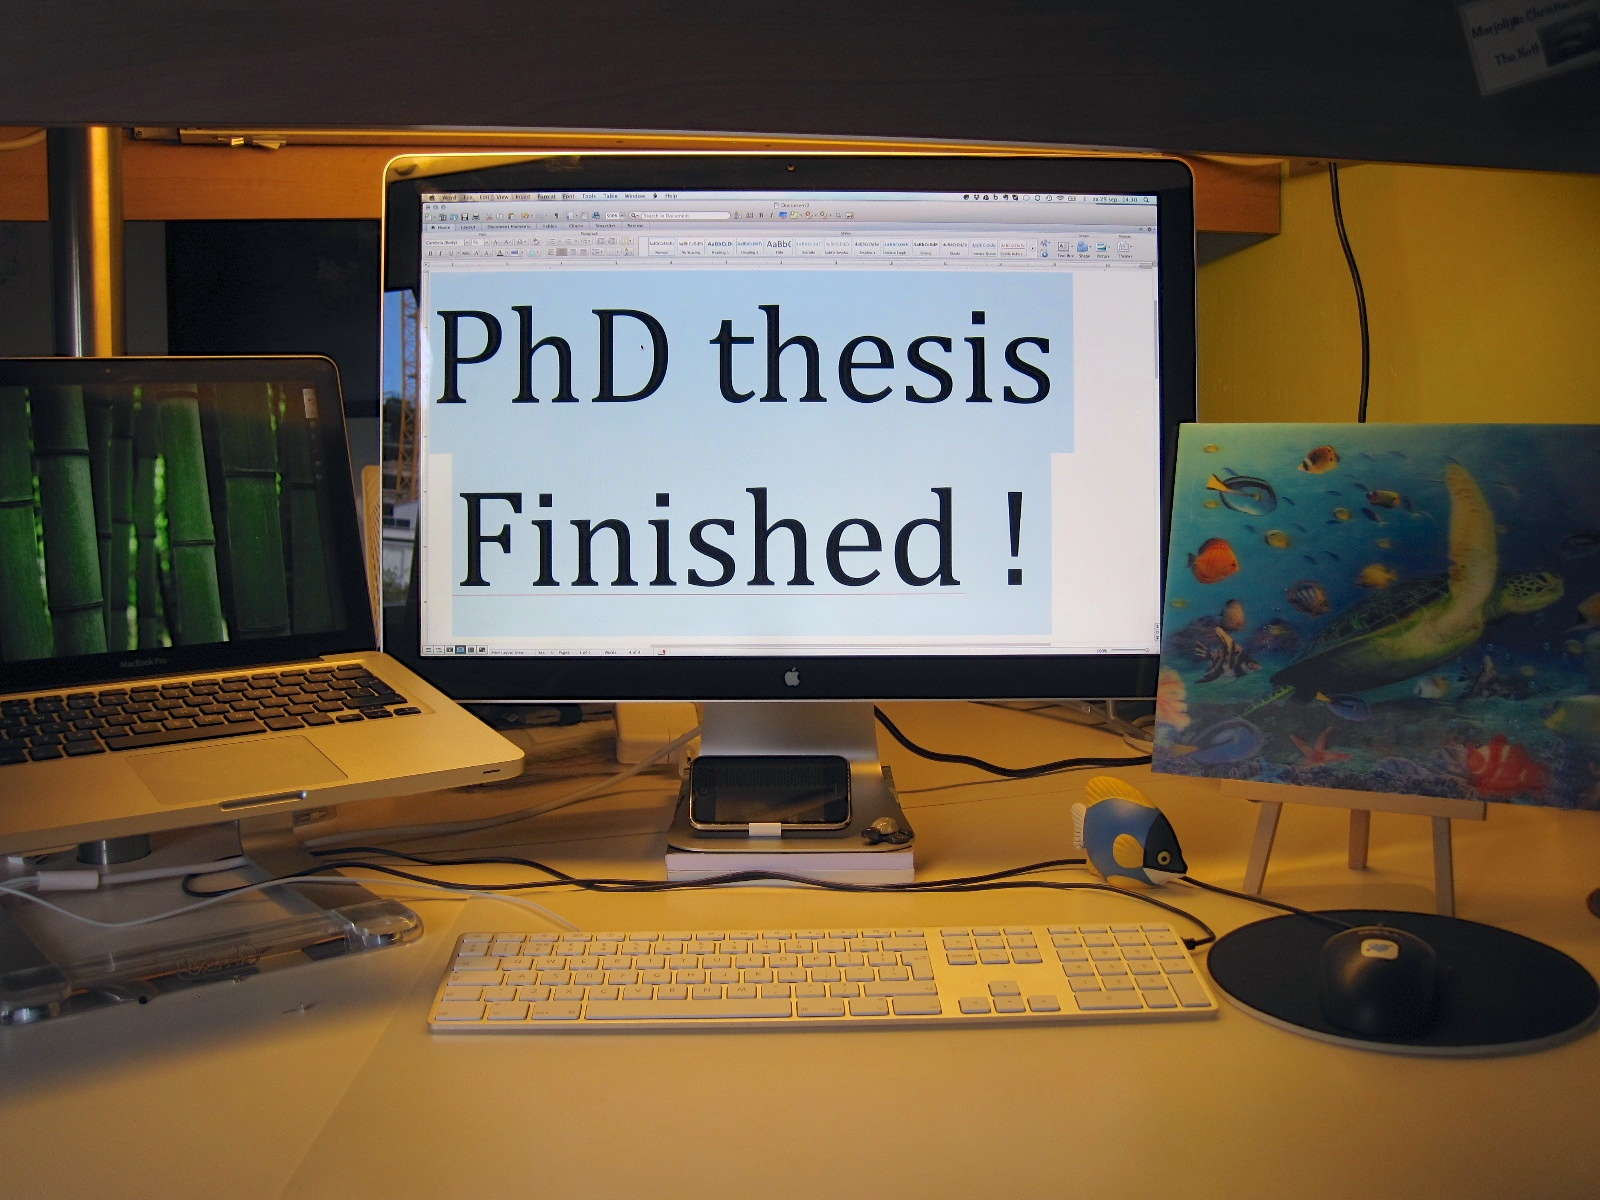 phd thesis doctoral thesis